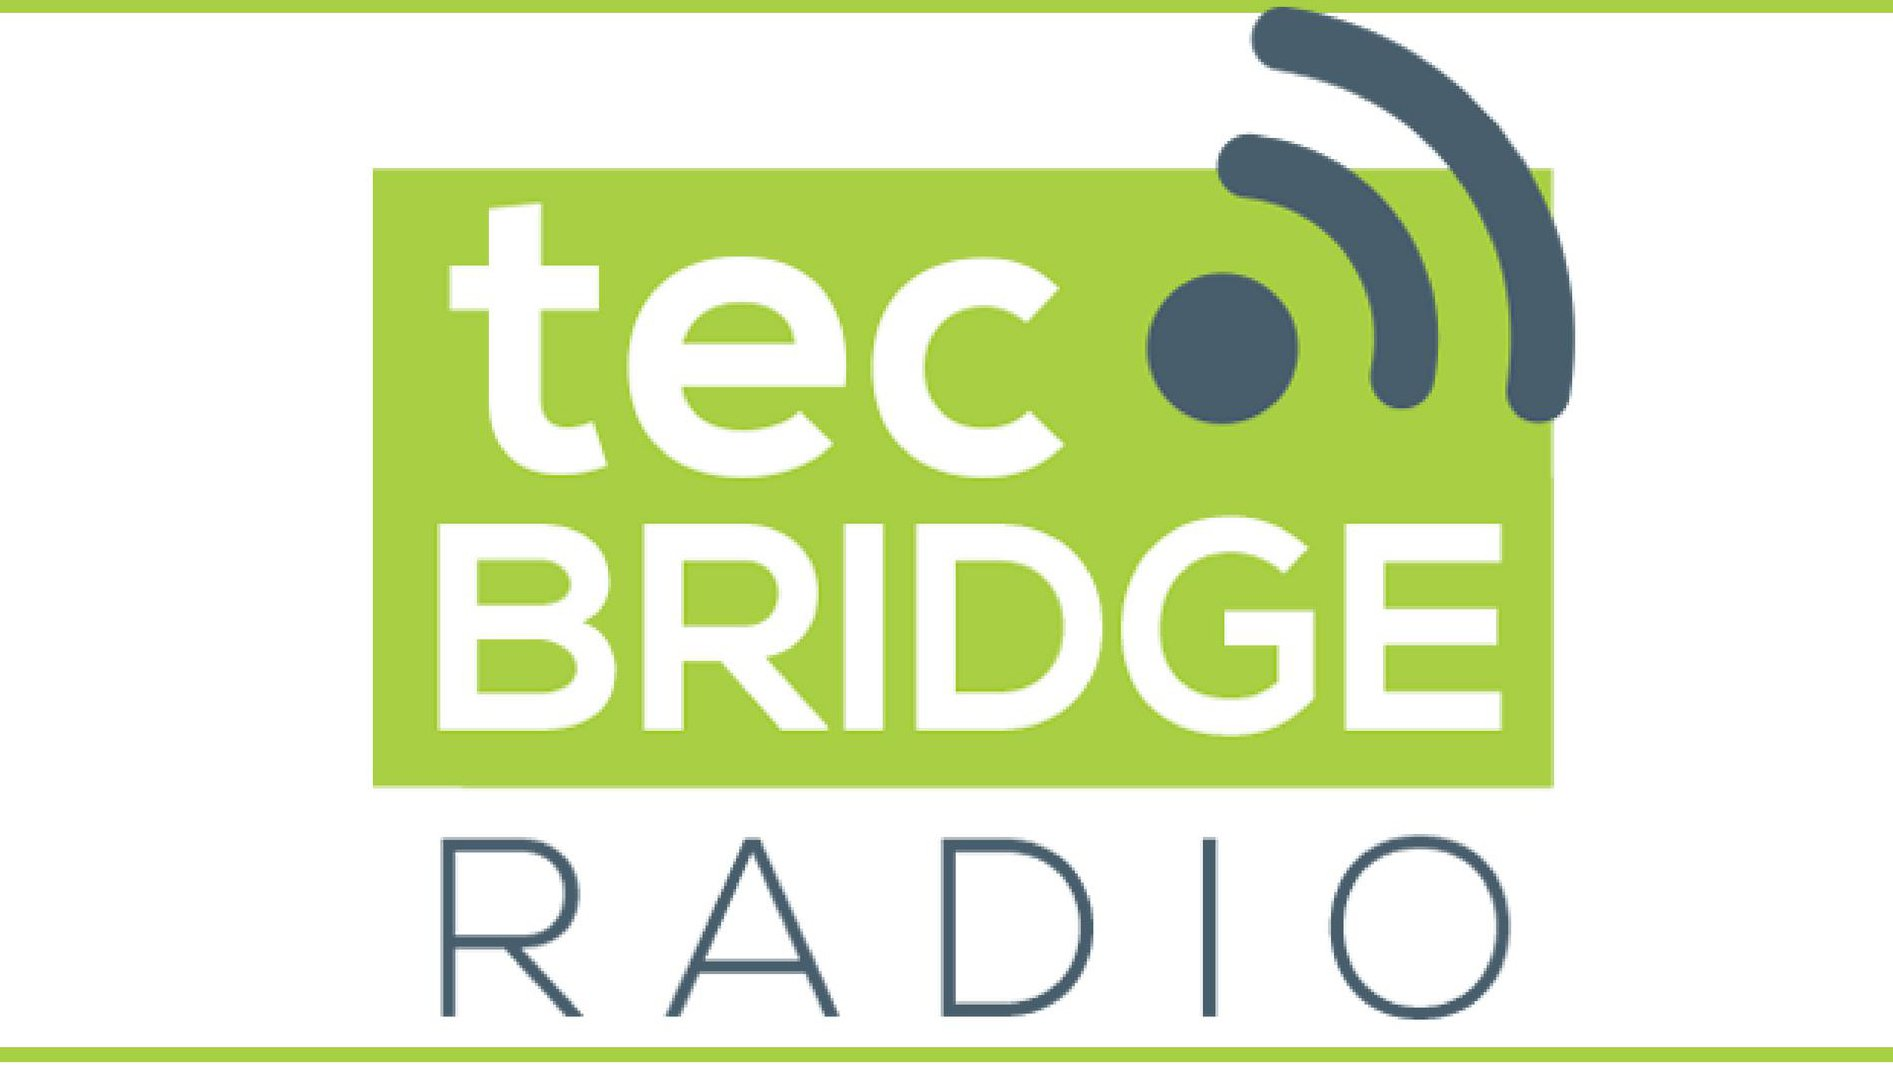 tecBridge Radio Podcast